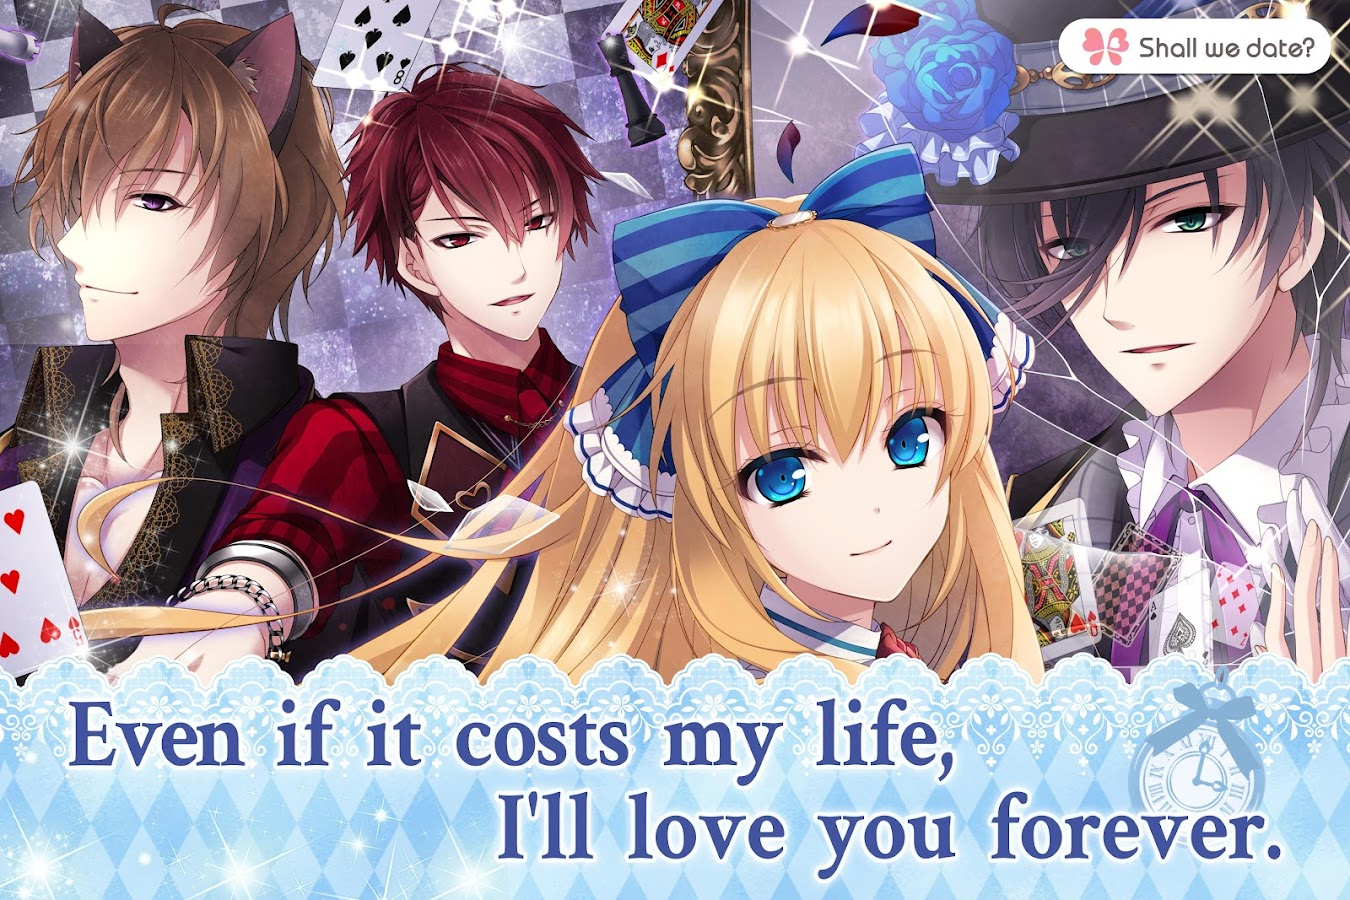 Lost Alice - otome game/dating sim shall we date 1.4.3 Update